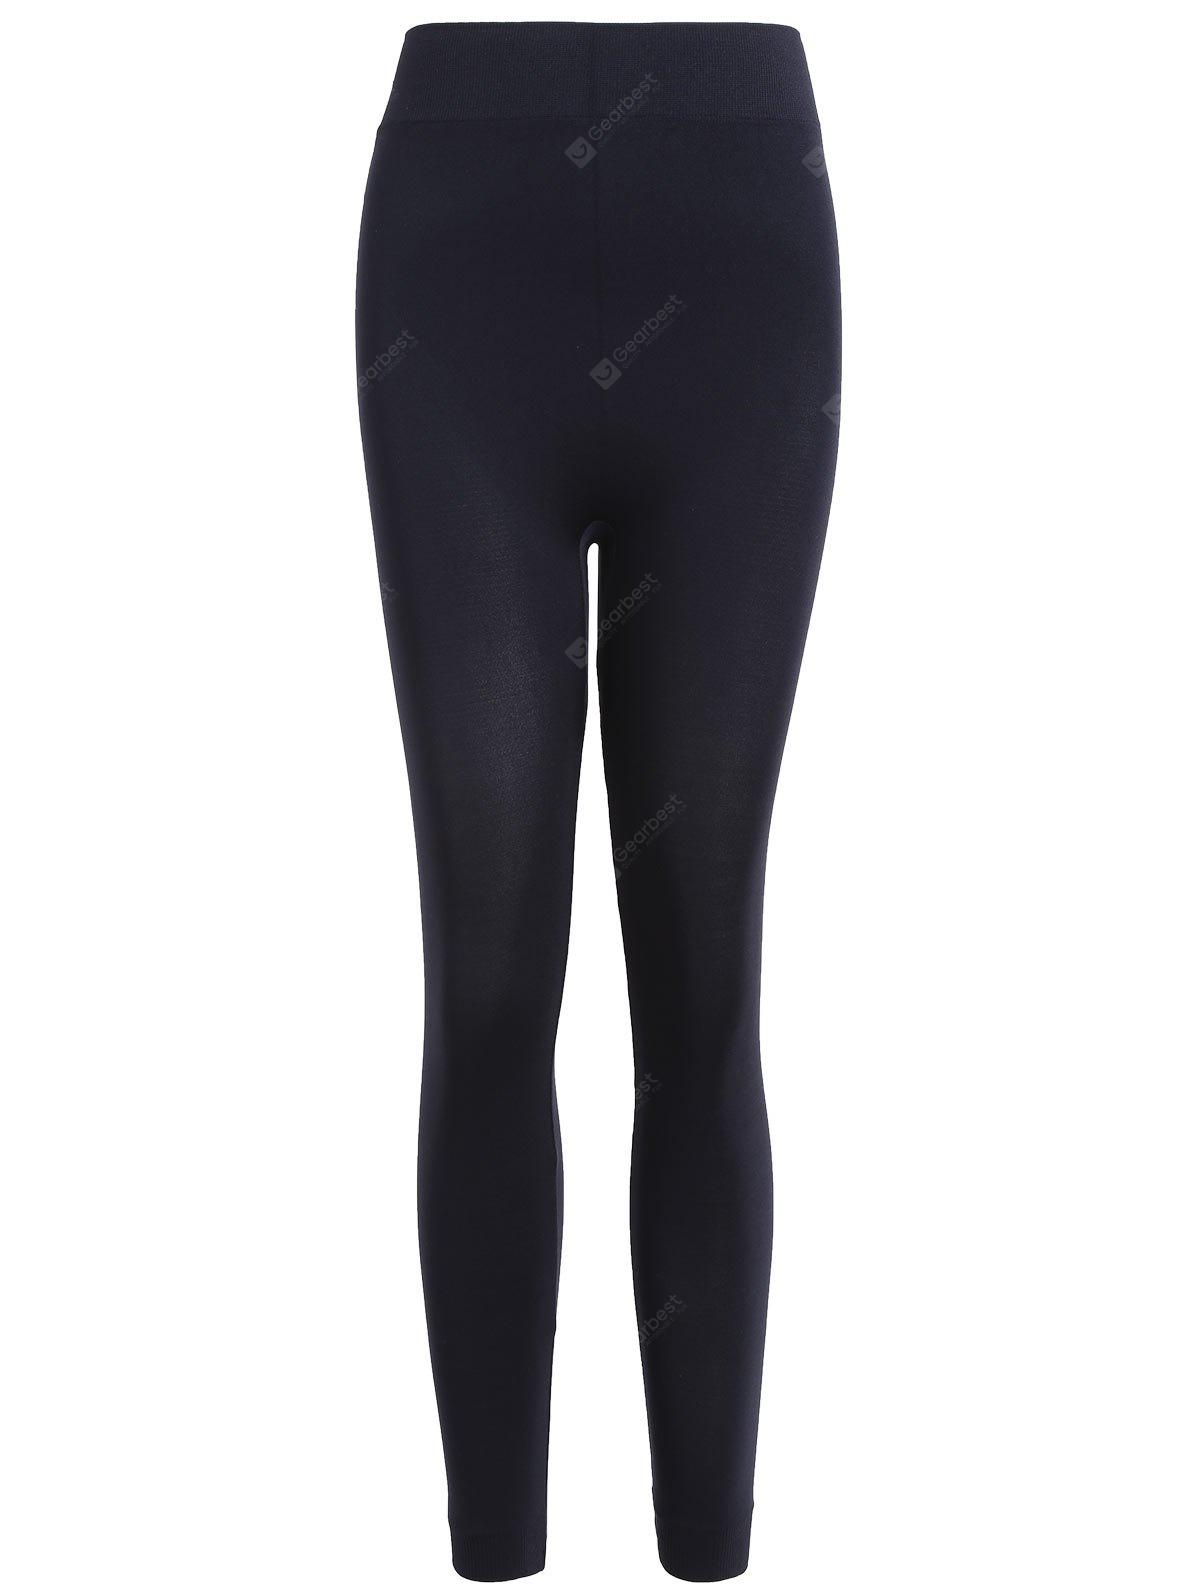 BLACK Cropped Sport Leggings